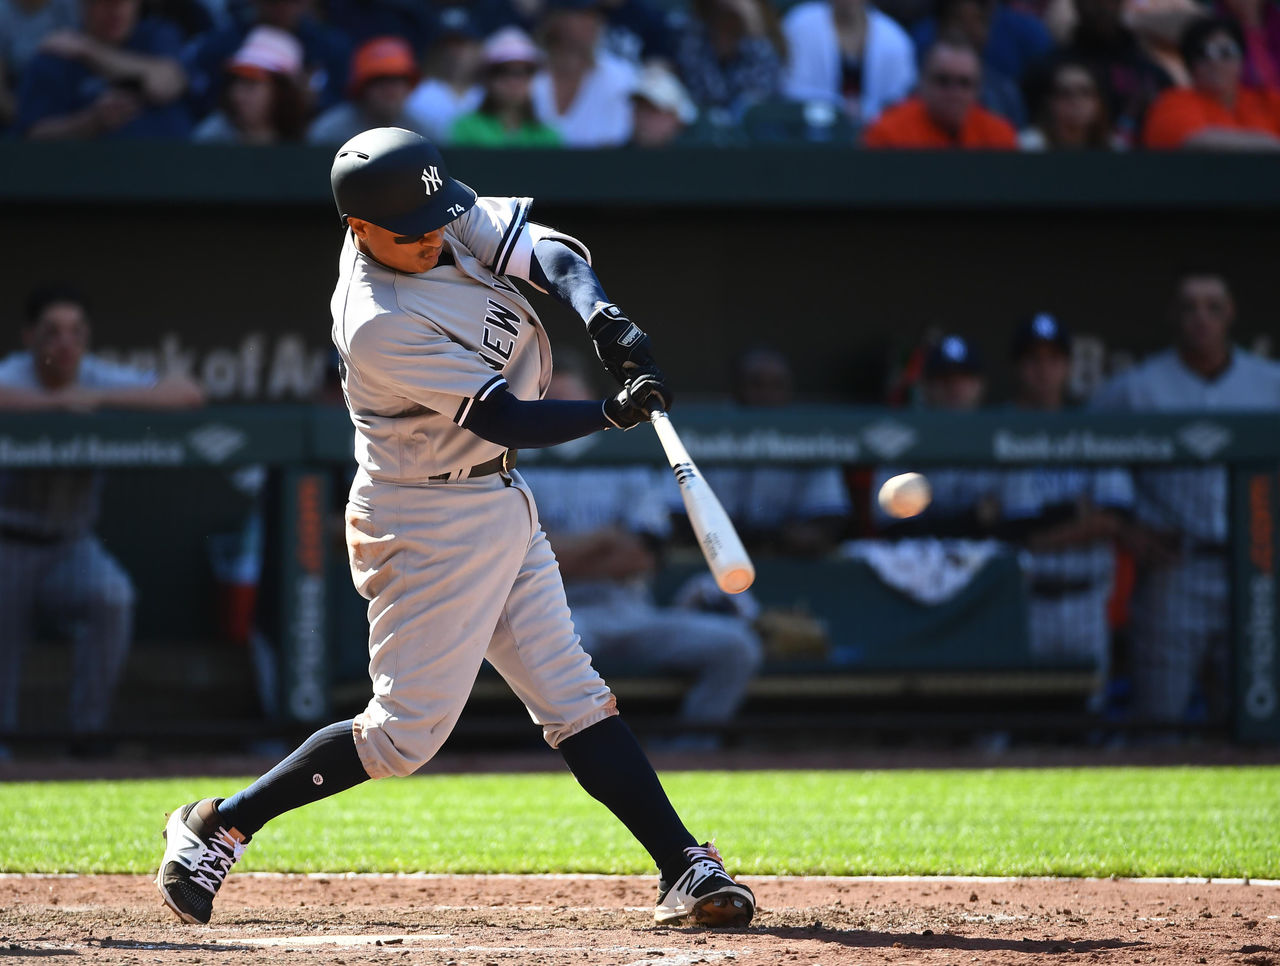 Cropped_2017-04-09t212809z_1089131199_nocid_rtrmadp_3_mlb-new-york-yankees-at-baltimore-orioles